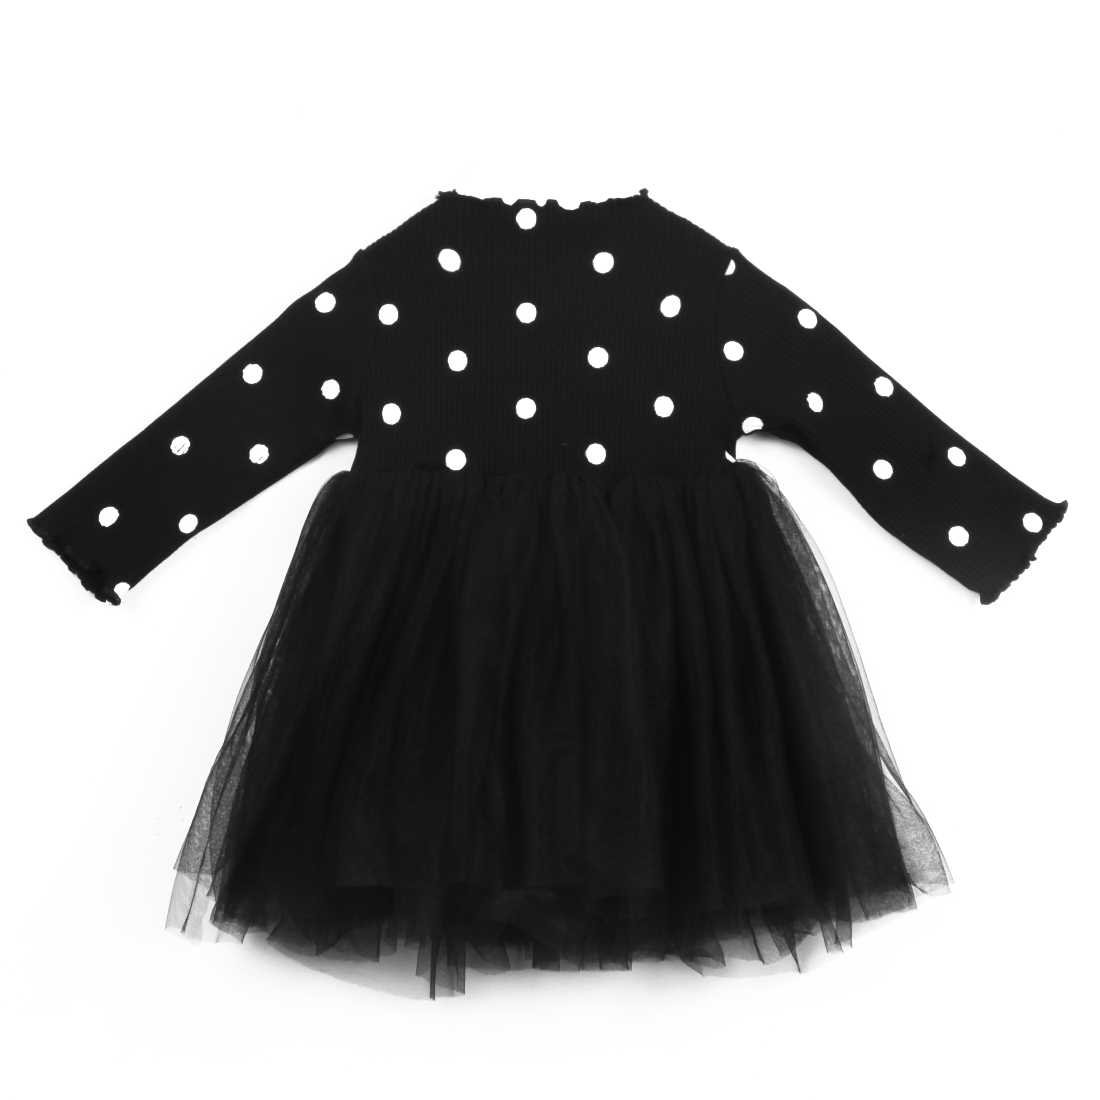 5baa48d9c675 Spring Newborn Kids Baby Girls Long Sleeve Knit Polka Dot Lace Tutu Tulle Dress  Holiday Casual